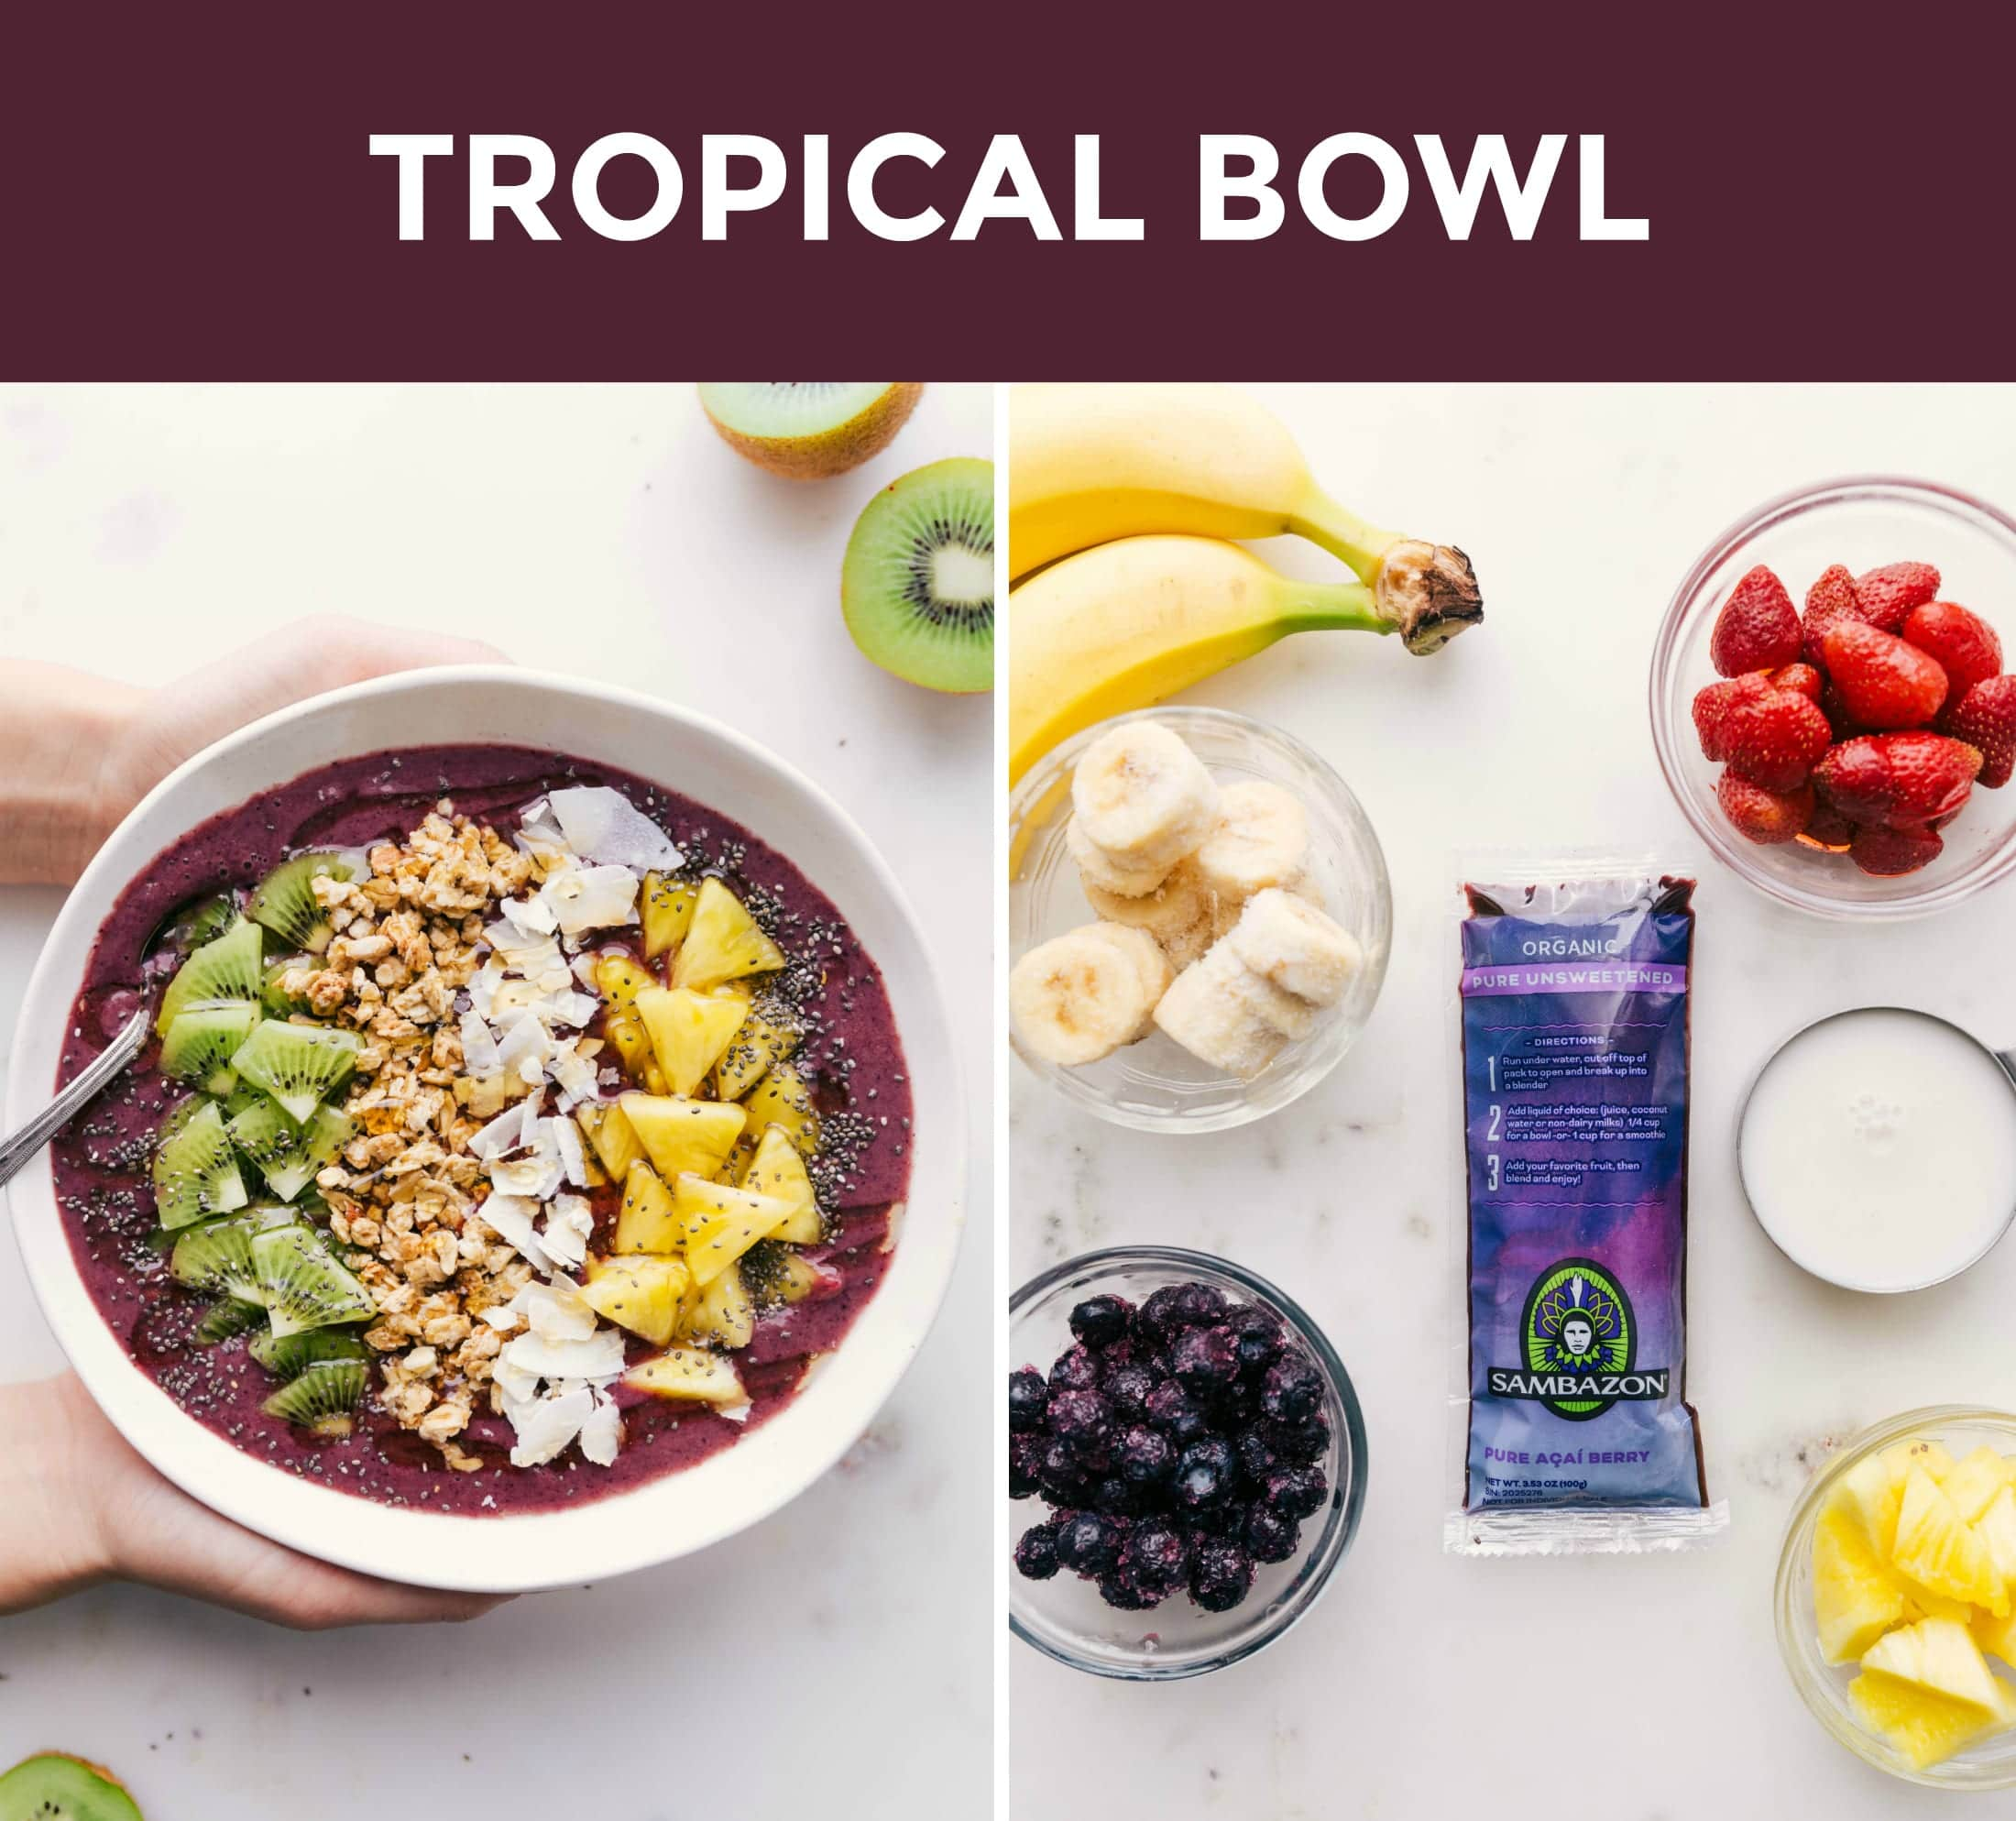 Two side by side photos; on the left is an overhead shot of a tropical flavored acai bowl and on the right is an ingredient shot